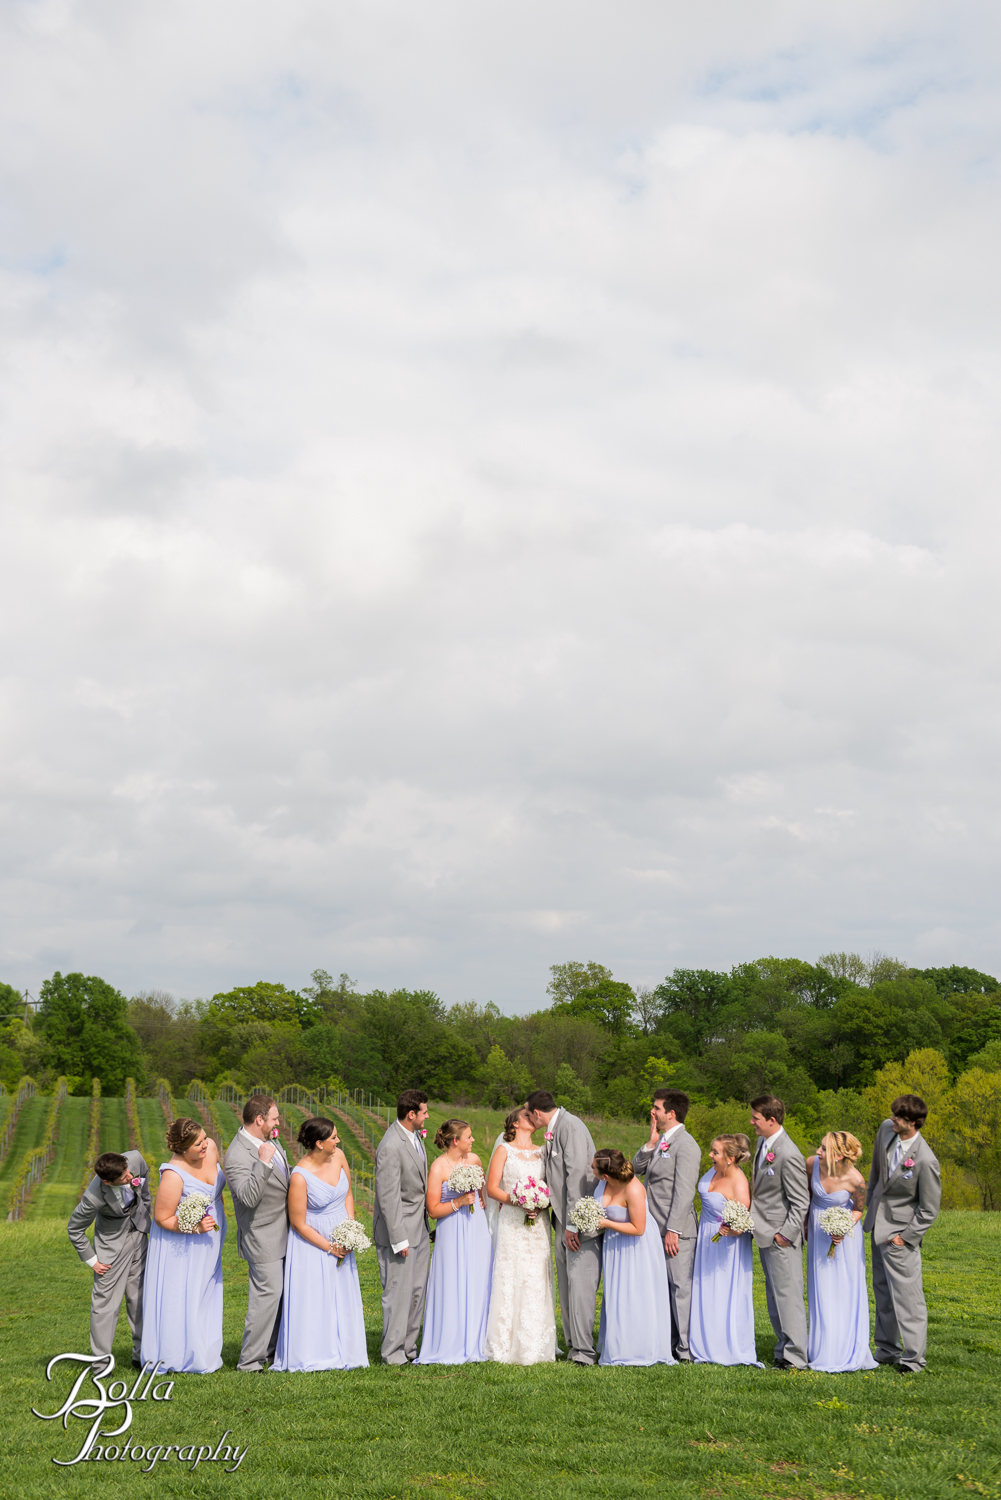 Bolla_Photography_St_Louis_wedding_photographer_Villa_Marie_Winery-0269.jpg